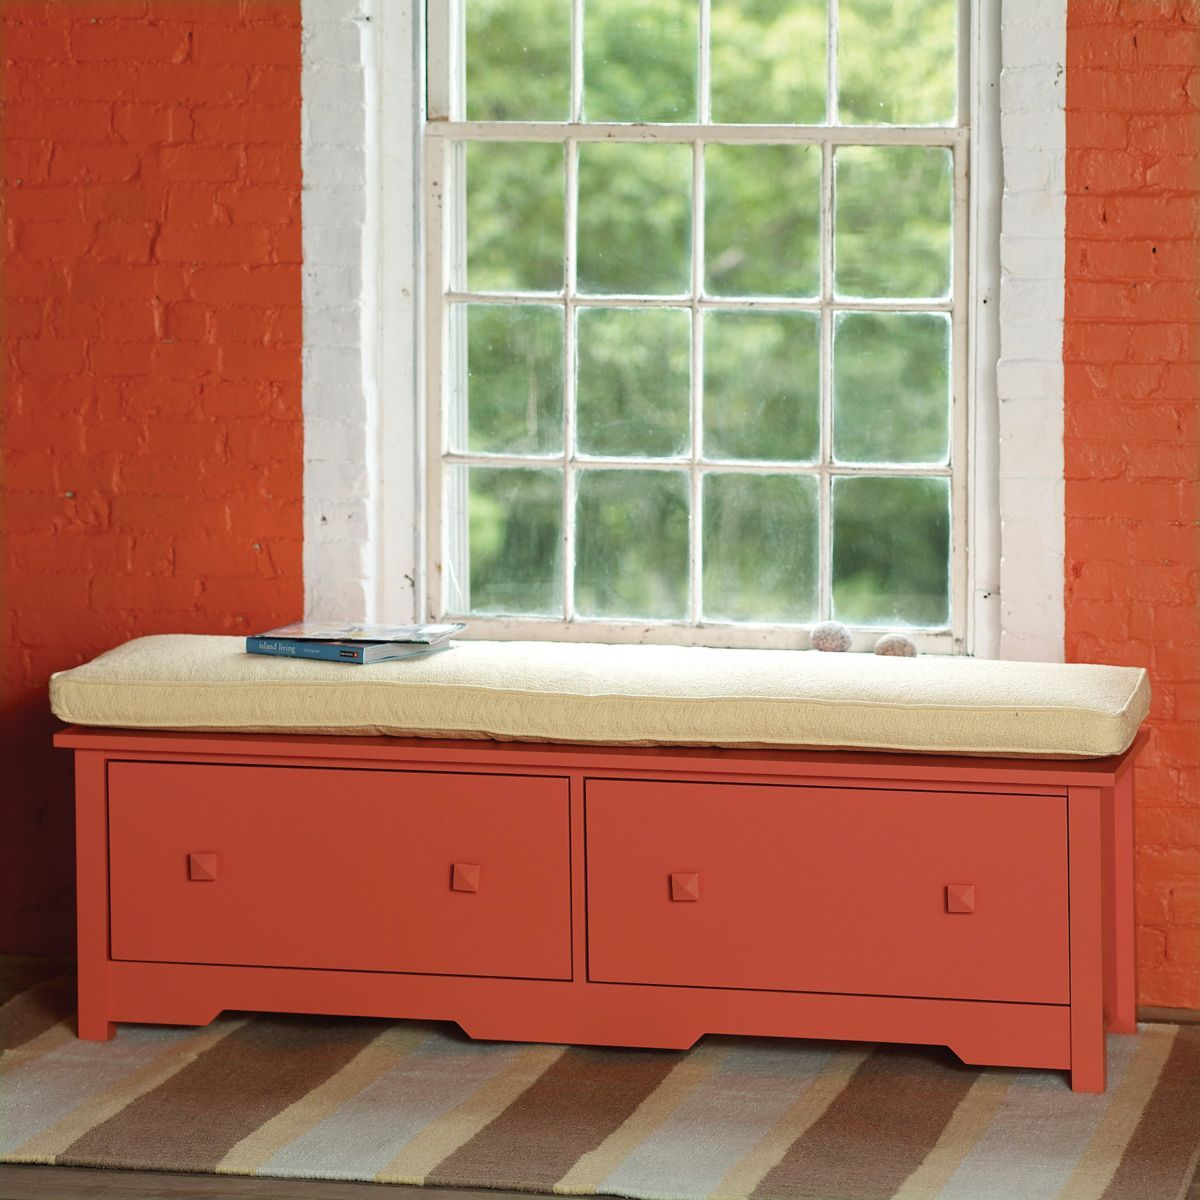 Bed under window  bay double window seat  window sill storage drawers and clutter